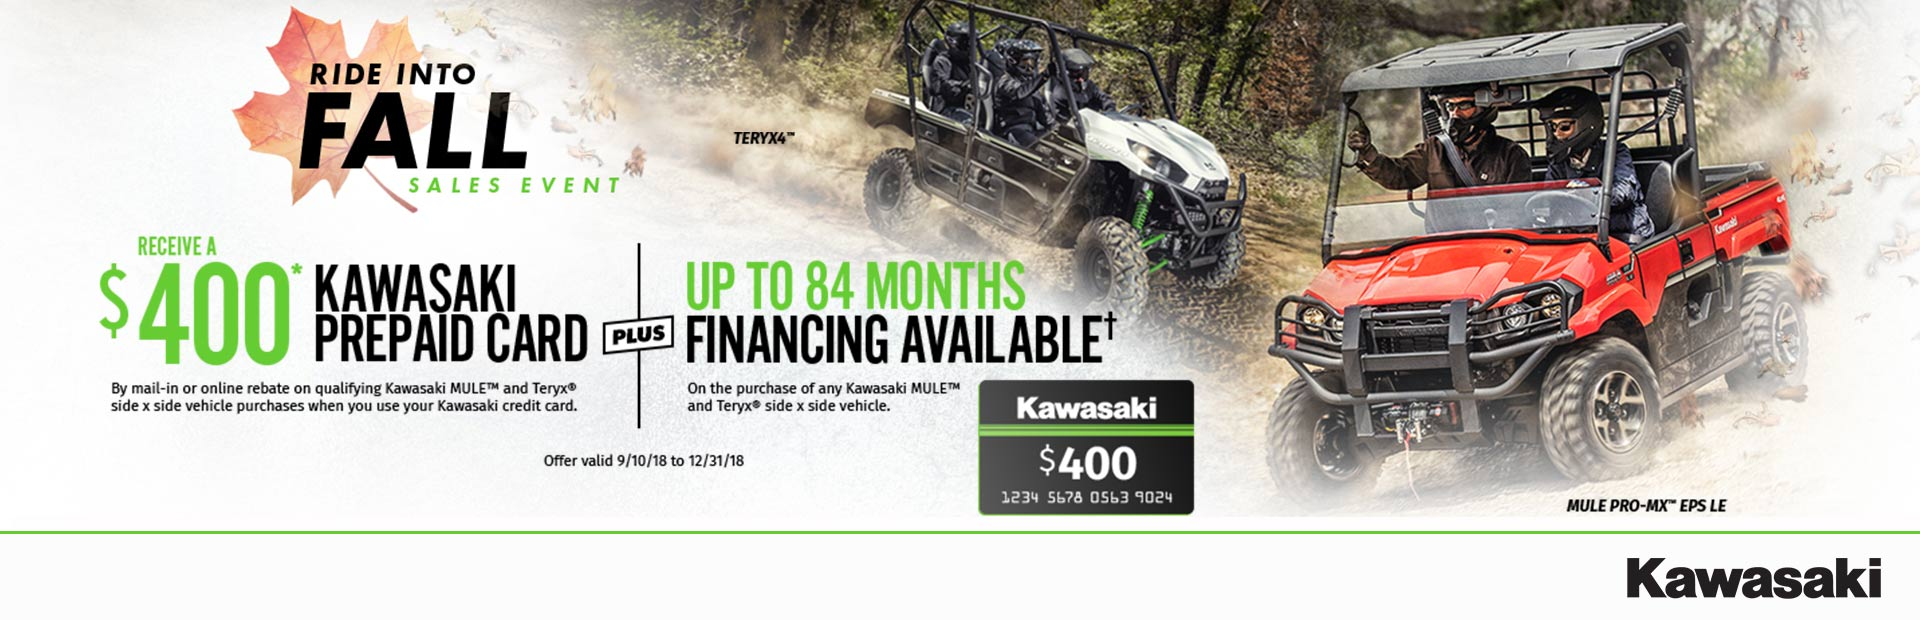 Home Pony Powersports Columbus Westerville Oh 877 315 2453 Bmx Cf Moto 500 Wiring Diagram 400 Prepaid Card With Qualifying Side X